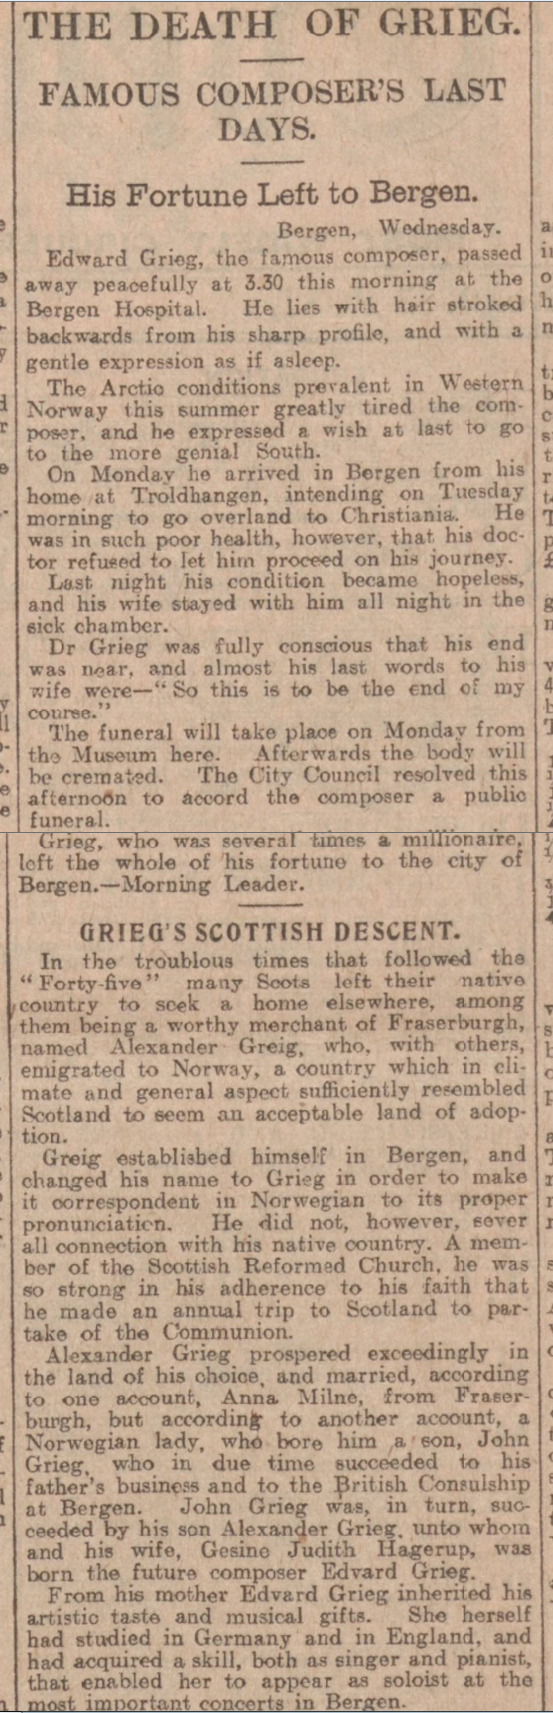 historical newspaper report on The Death of Edvard Grieg and His Scottish Ancestry